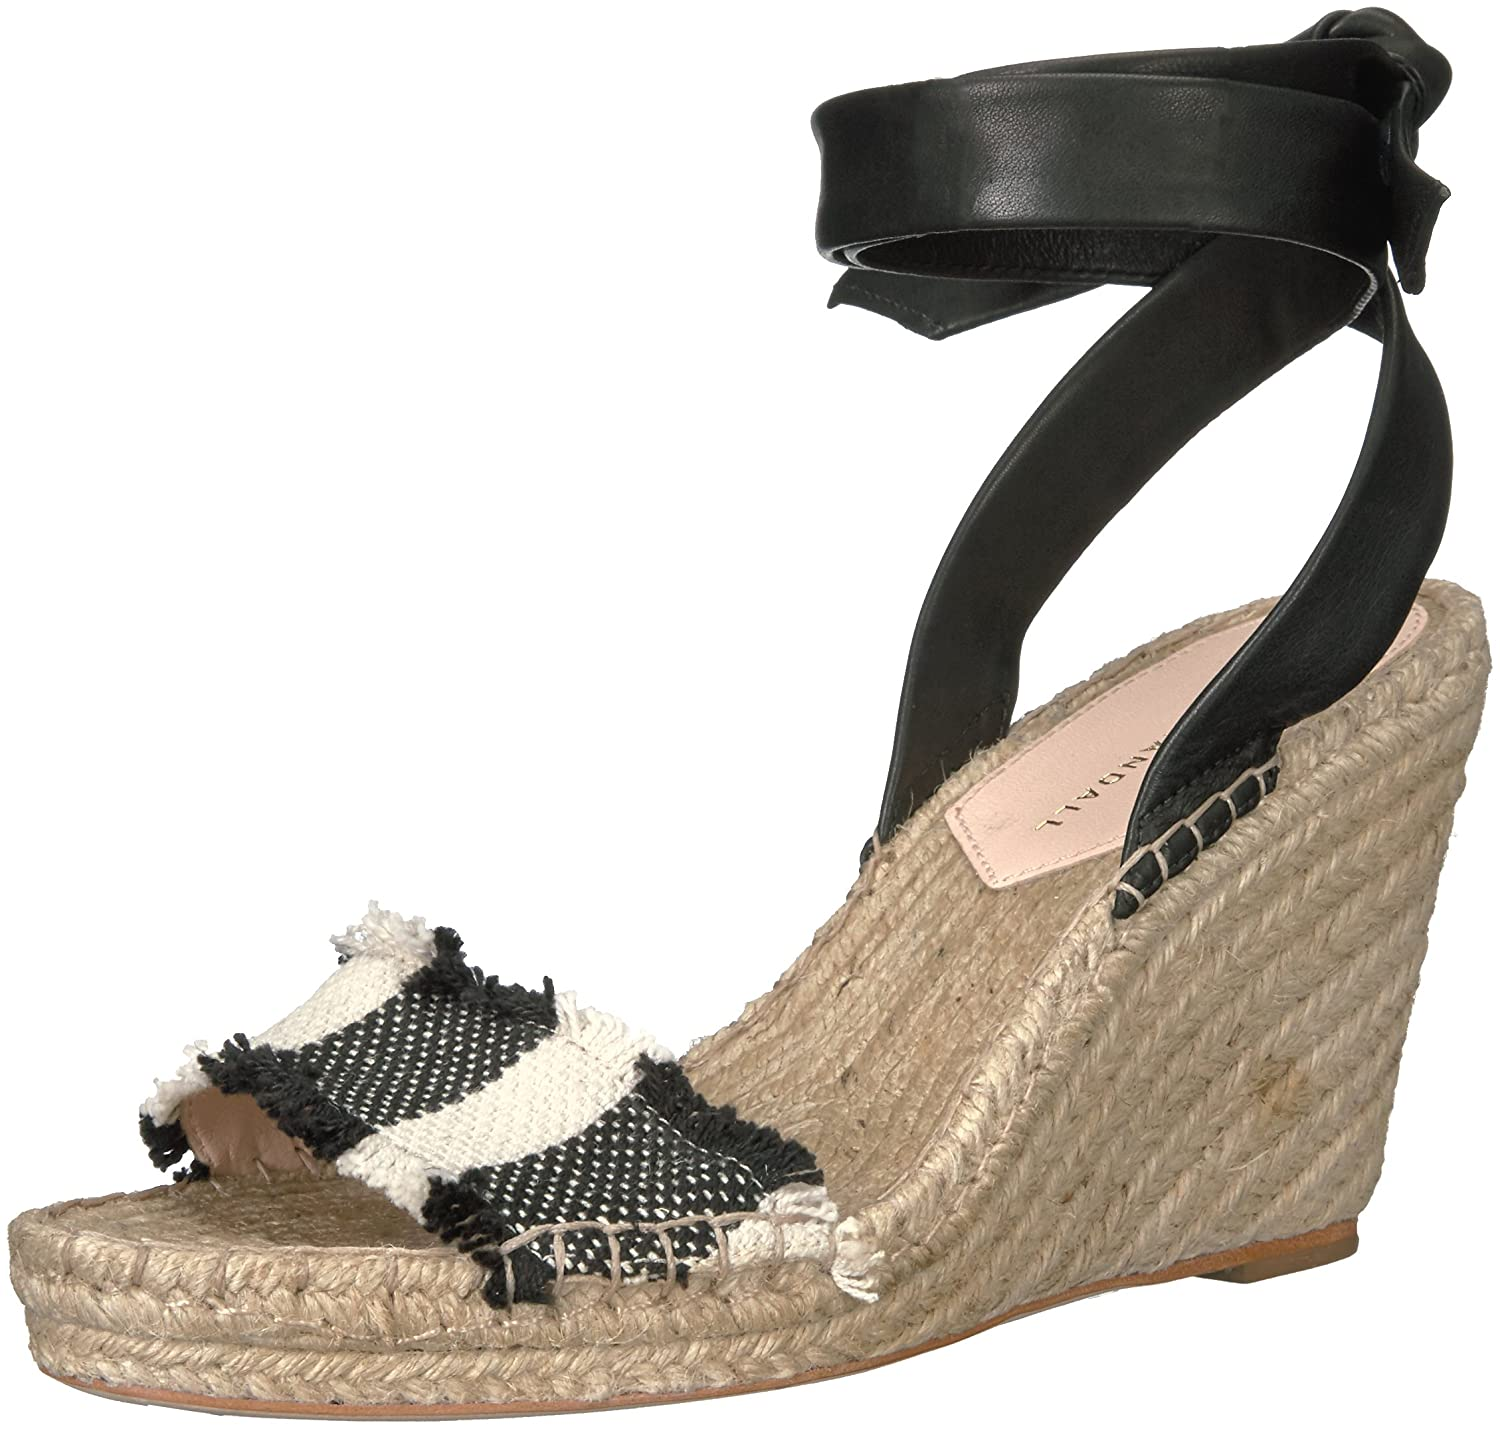 0c0aa236940 Amazon.com  LOEFFLER RANDALL Women s Harper Espadrille Wedge Sandal  Shoes